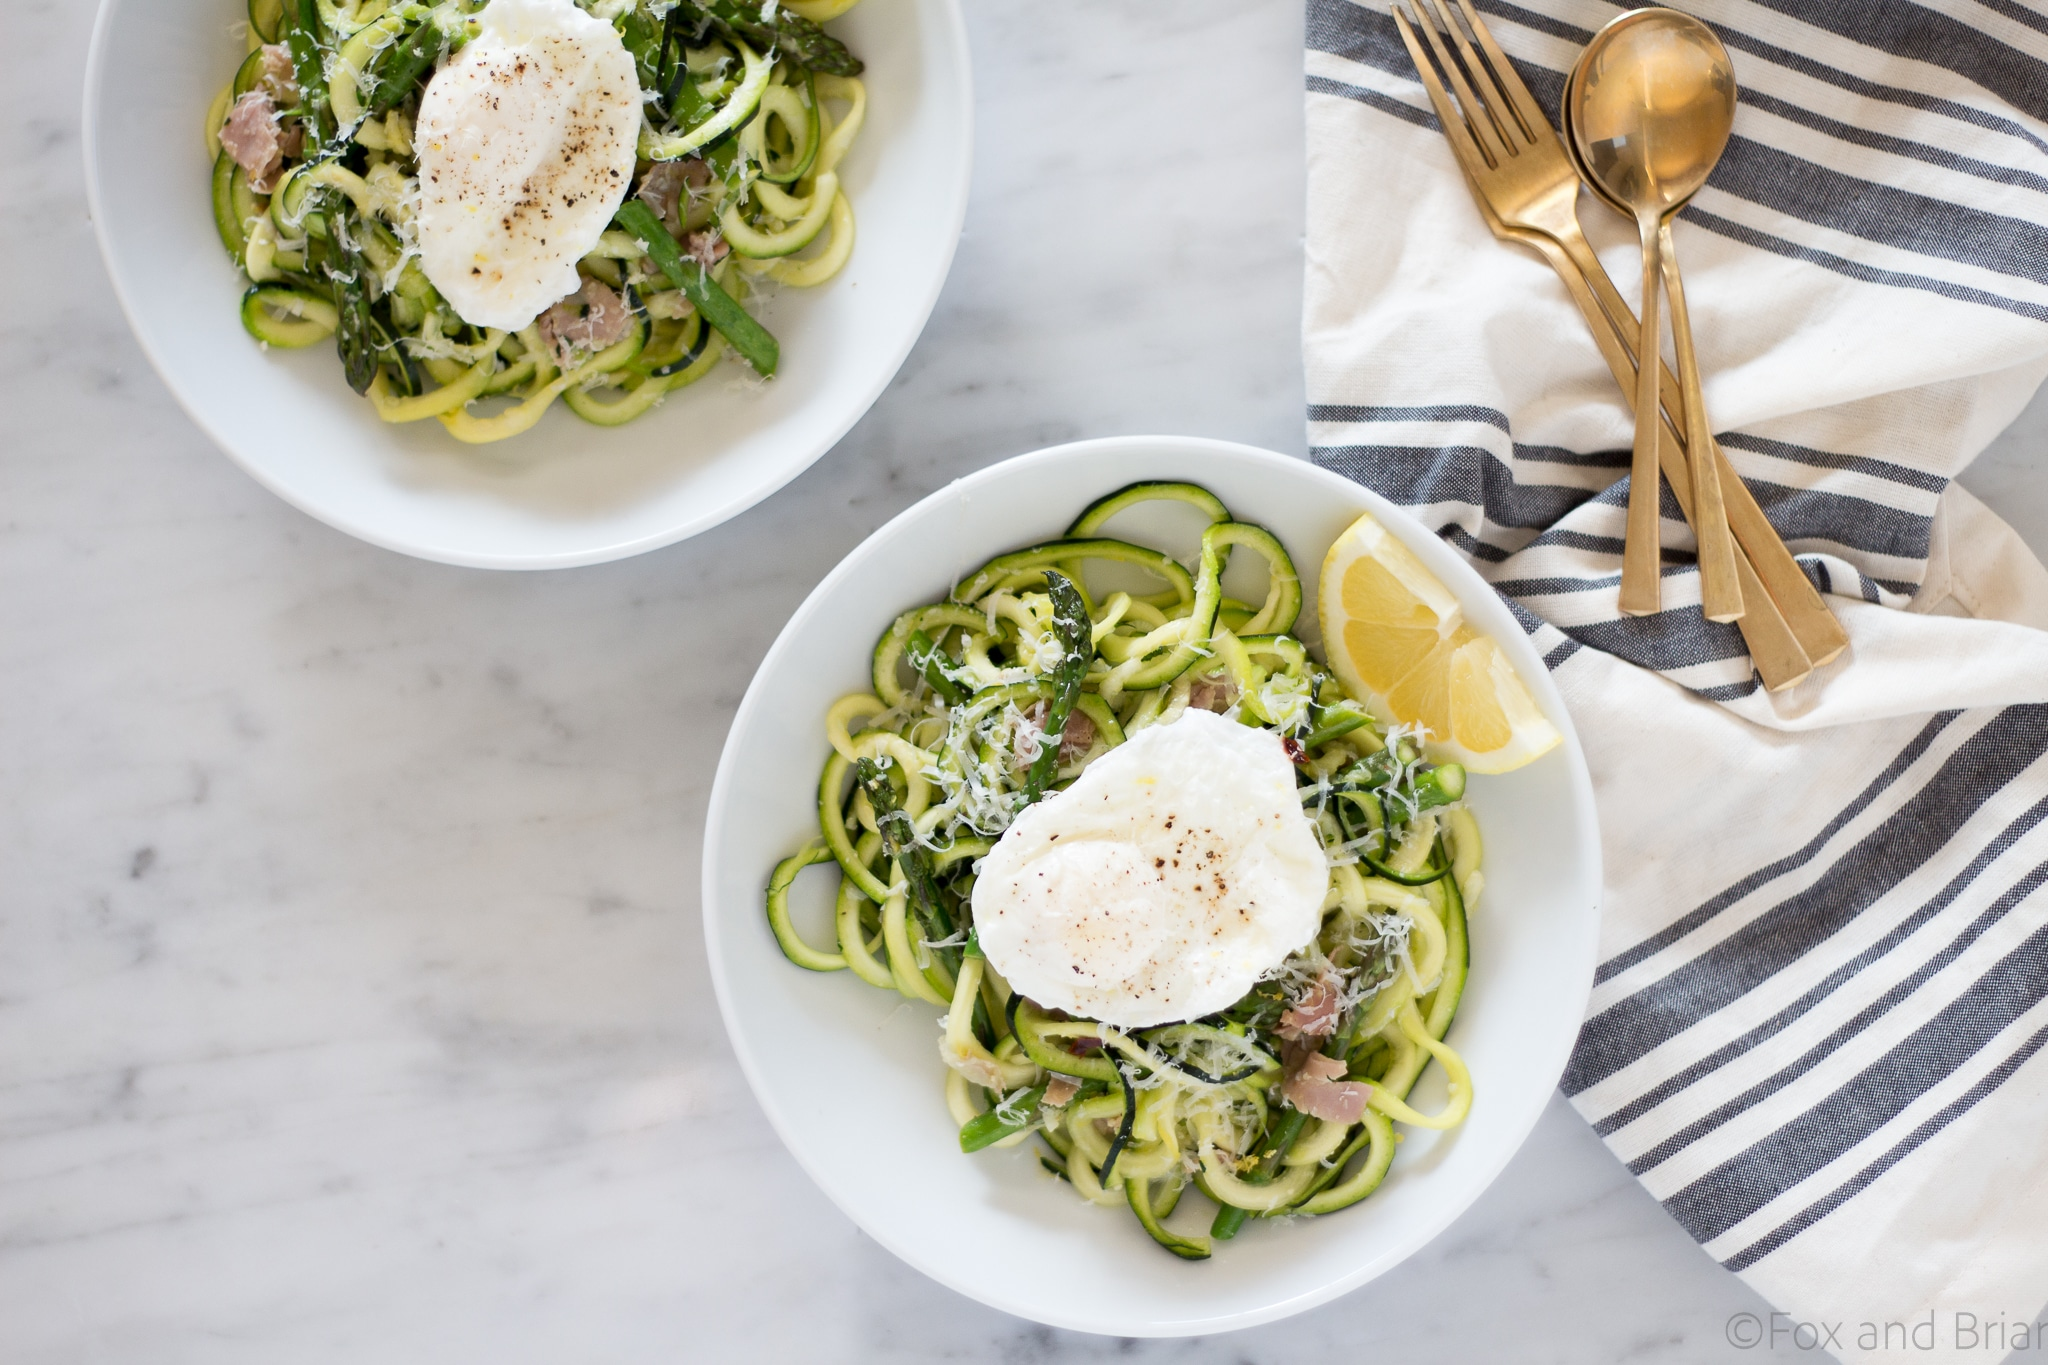 Zoodles (zuchinni noodles) quick cooked with asparagus, prosciutto, parmesan cheese, lemon and white wine all topped with a poached egg make a quick and light spring meal.